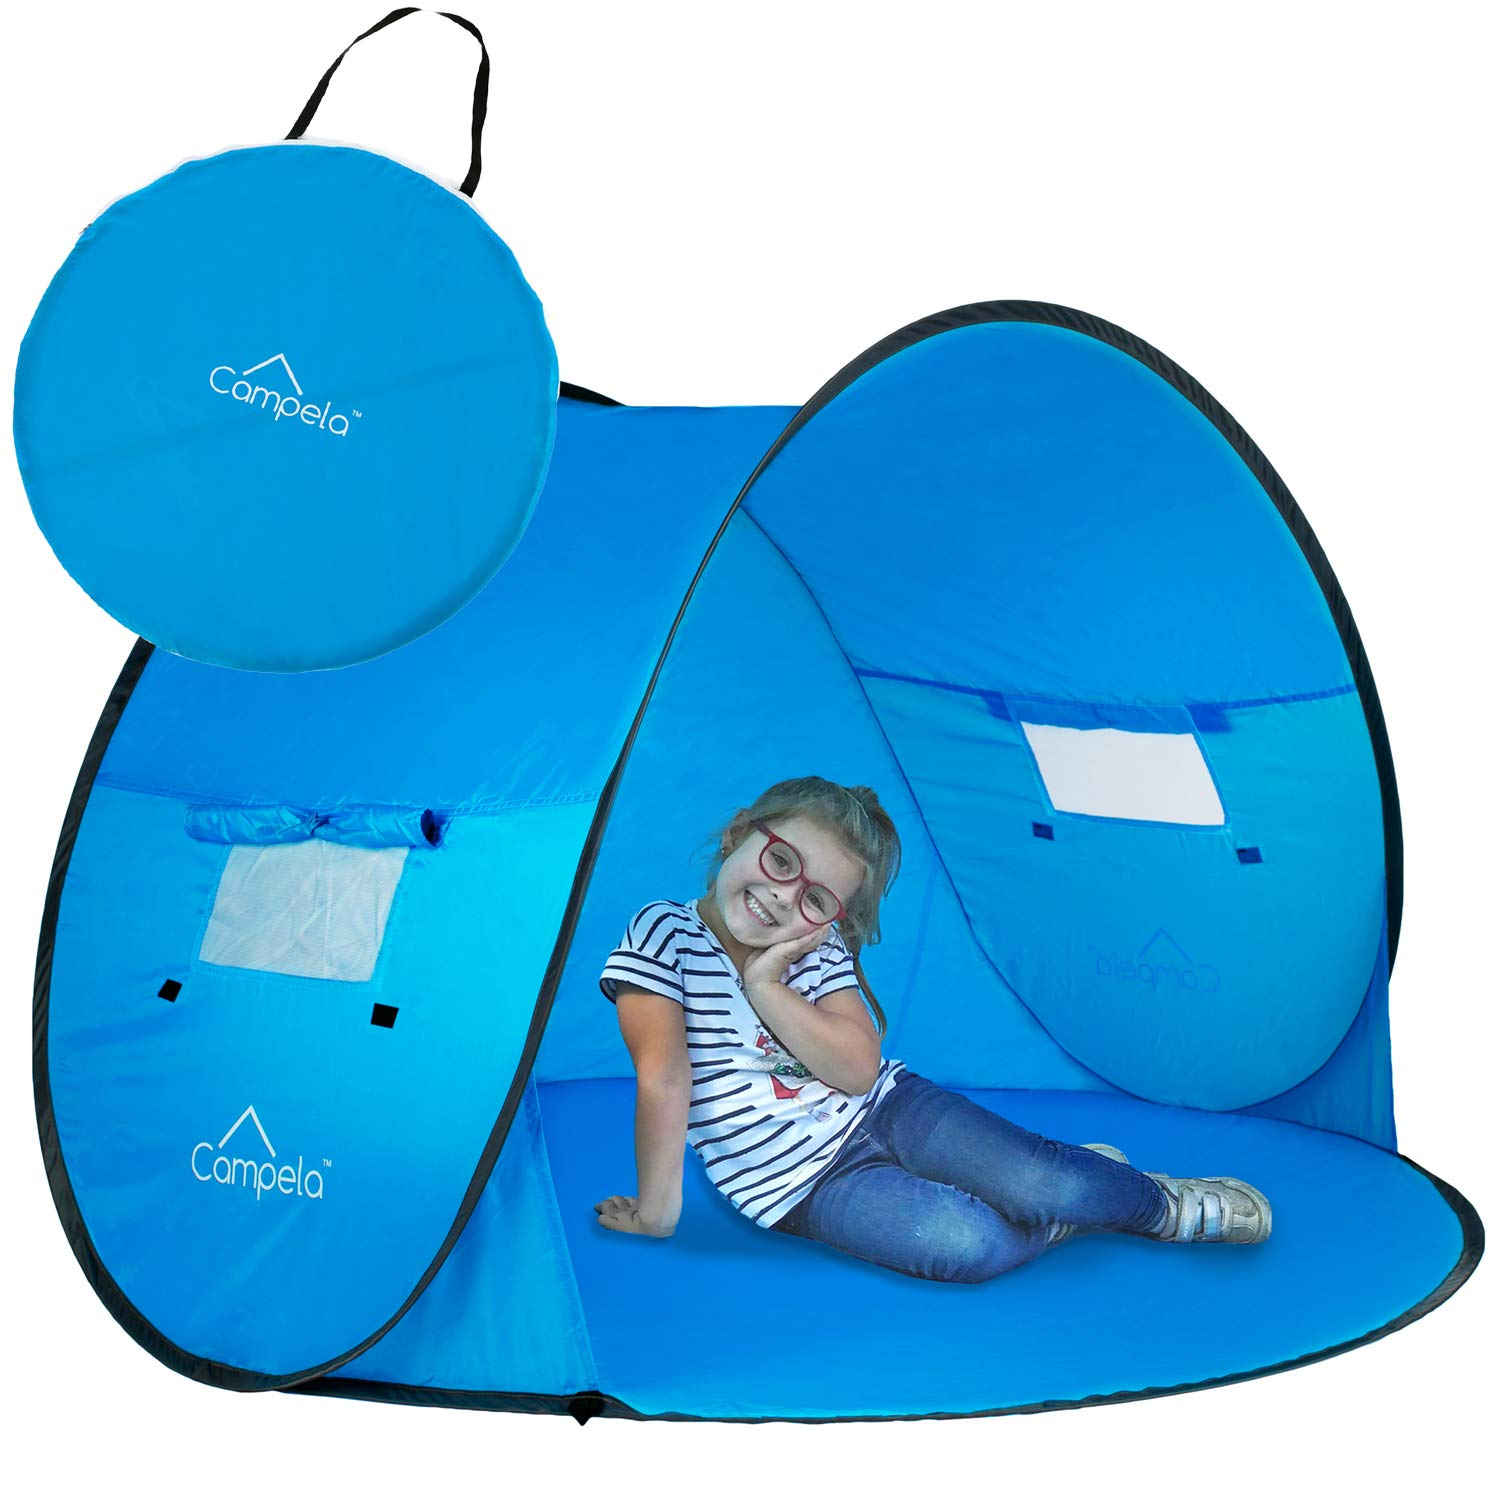 Campela Baby Beach Tent Pop Up Sun Shelter - UV Protection Beach Shade for Toddler, Infant and Family. Camping Gear size 58'x43'